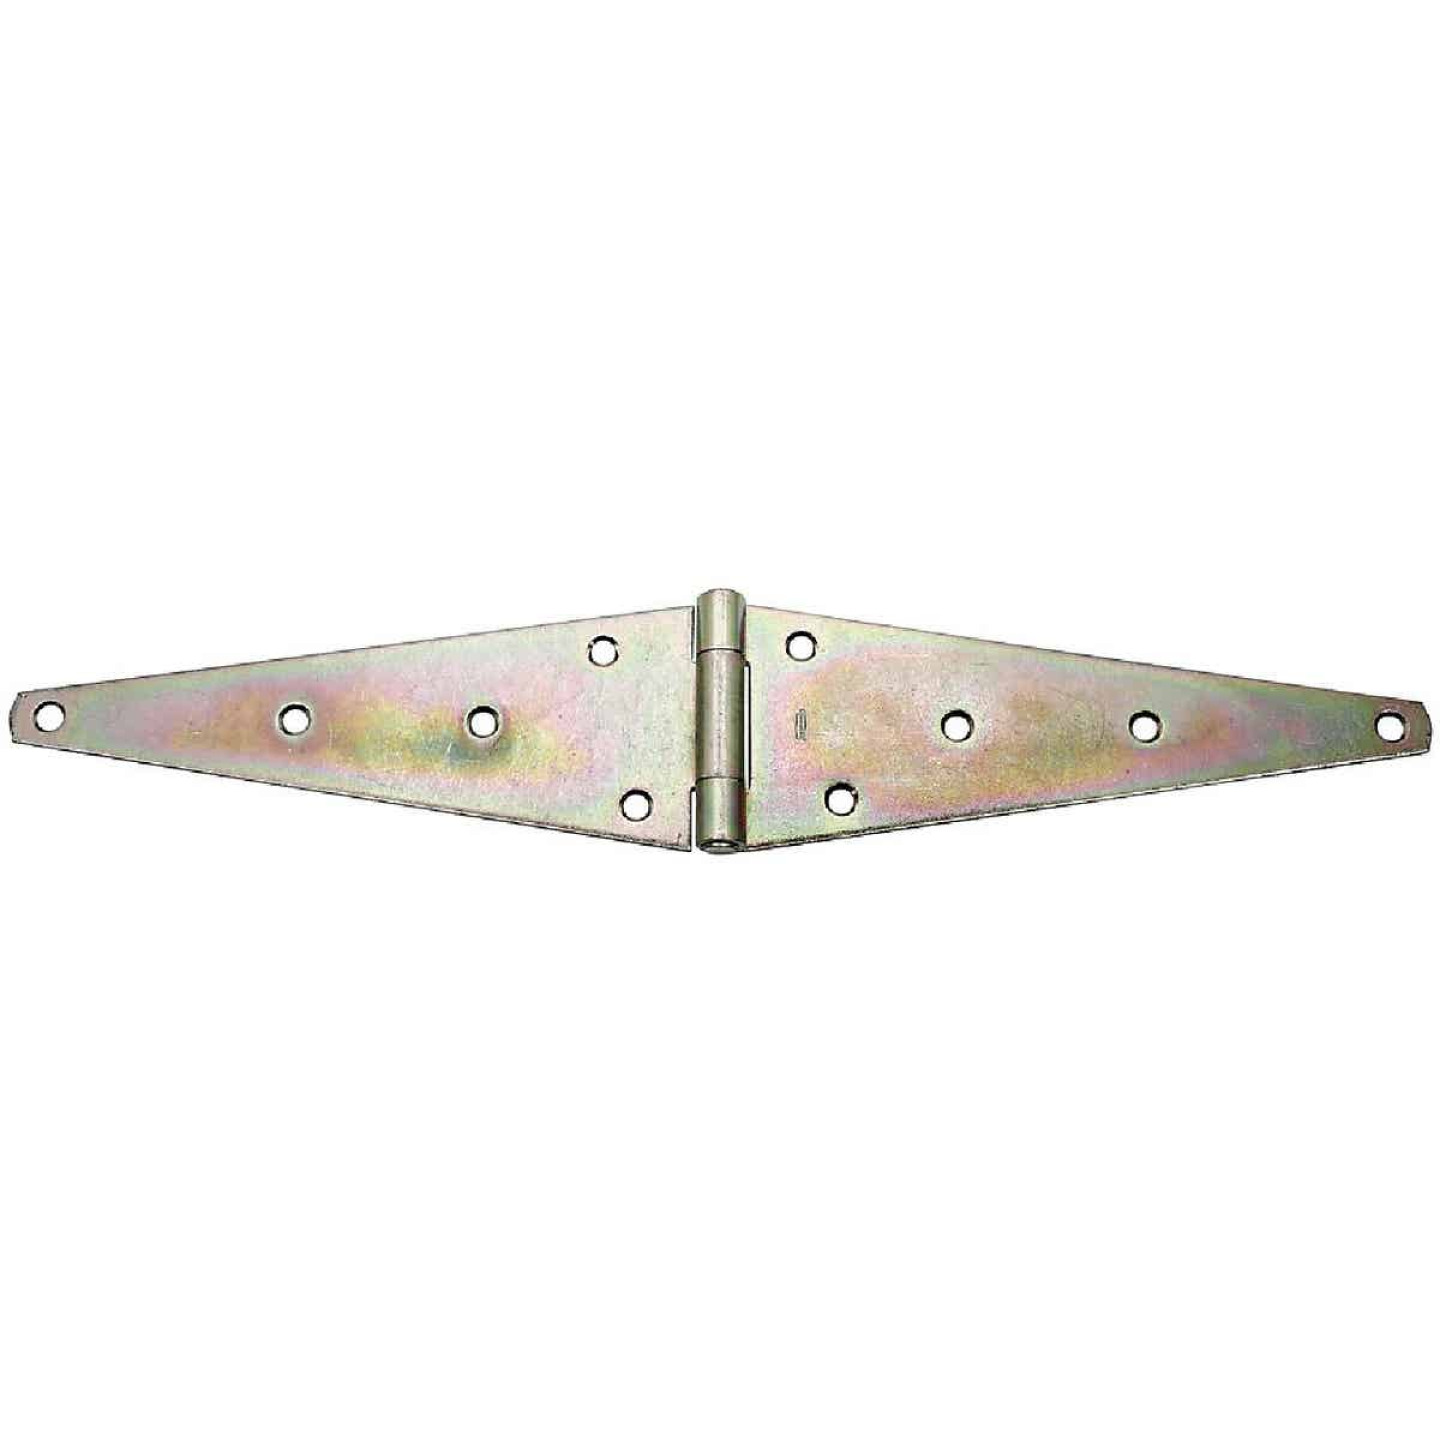 National 4.60 In. x 12 In. Zinc Heavy-Duty Strap Hinge Image 1